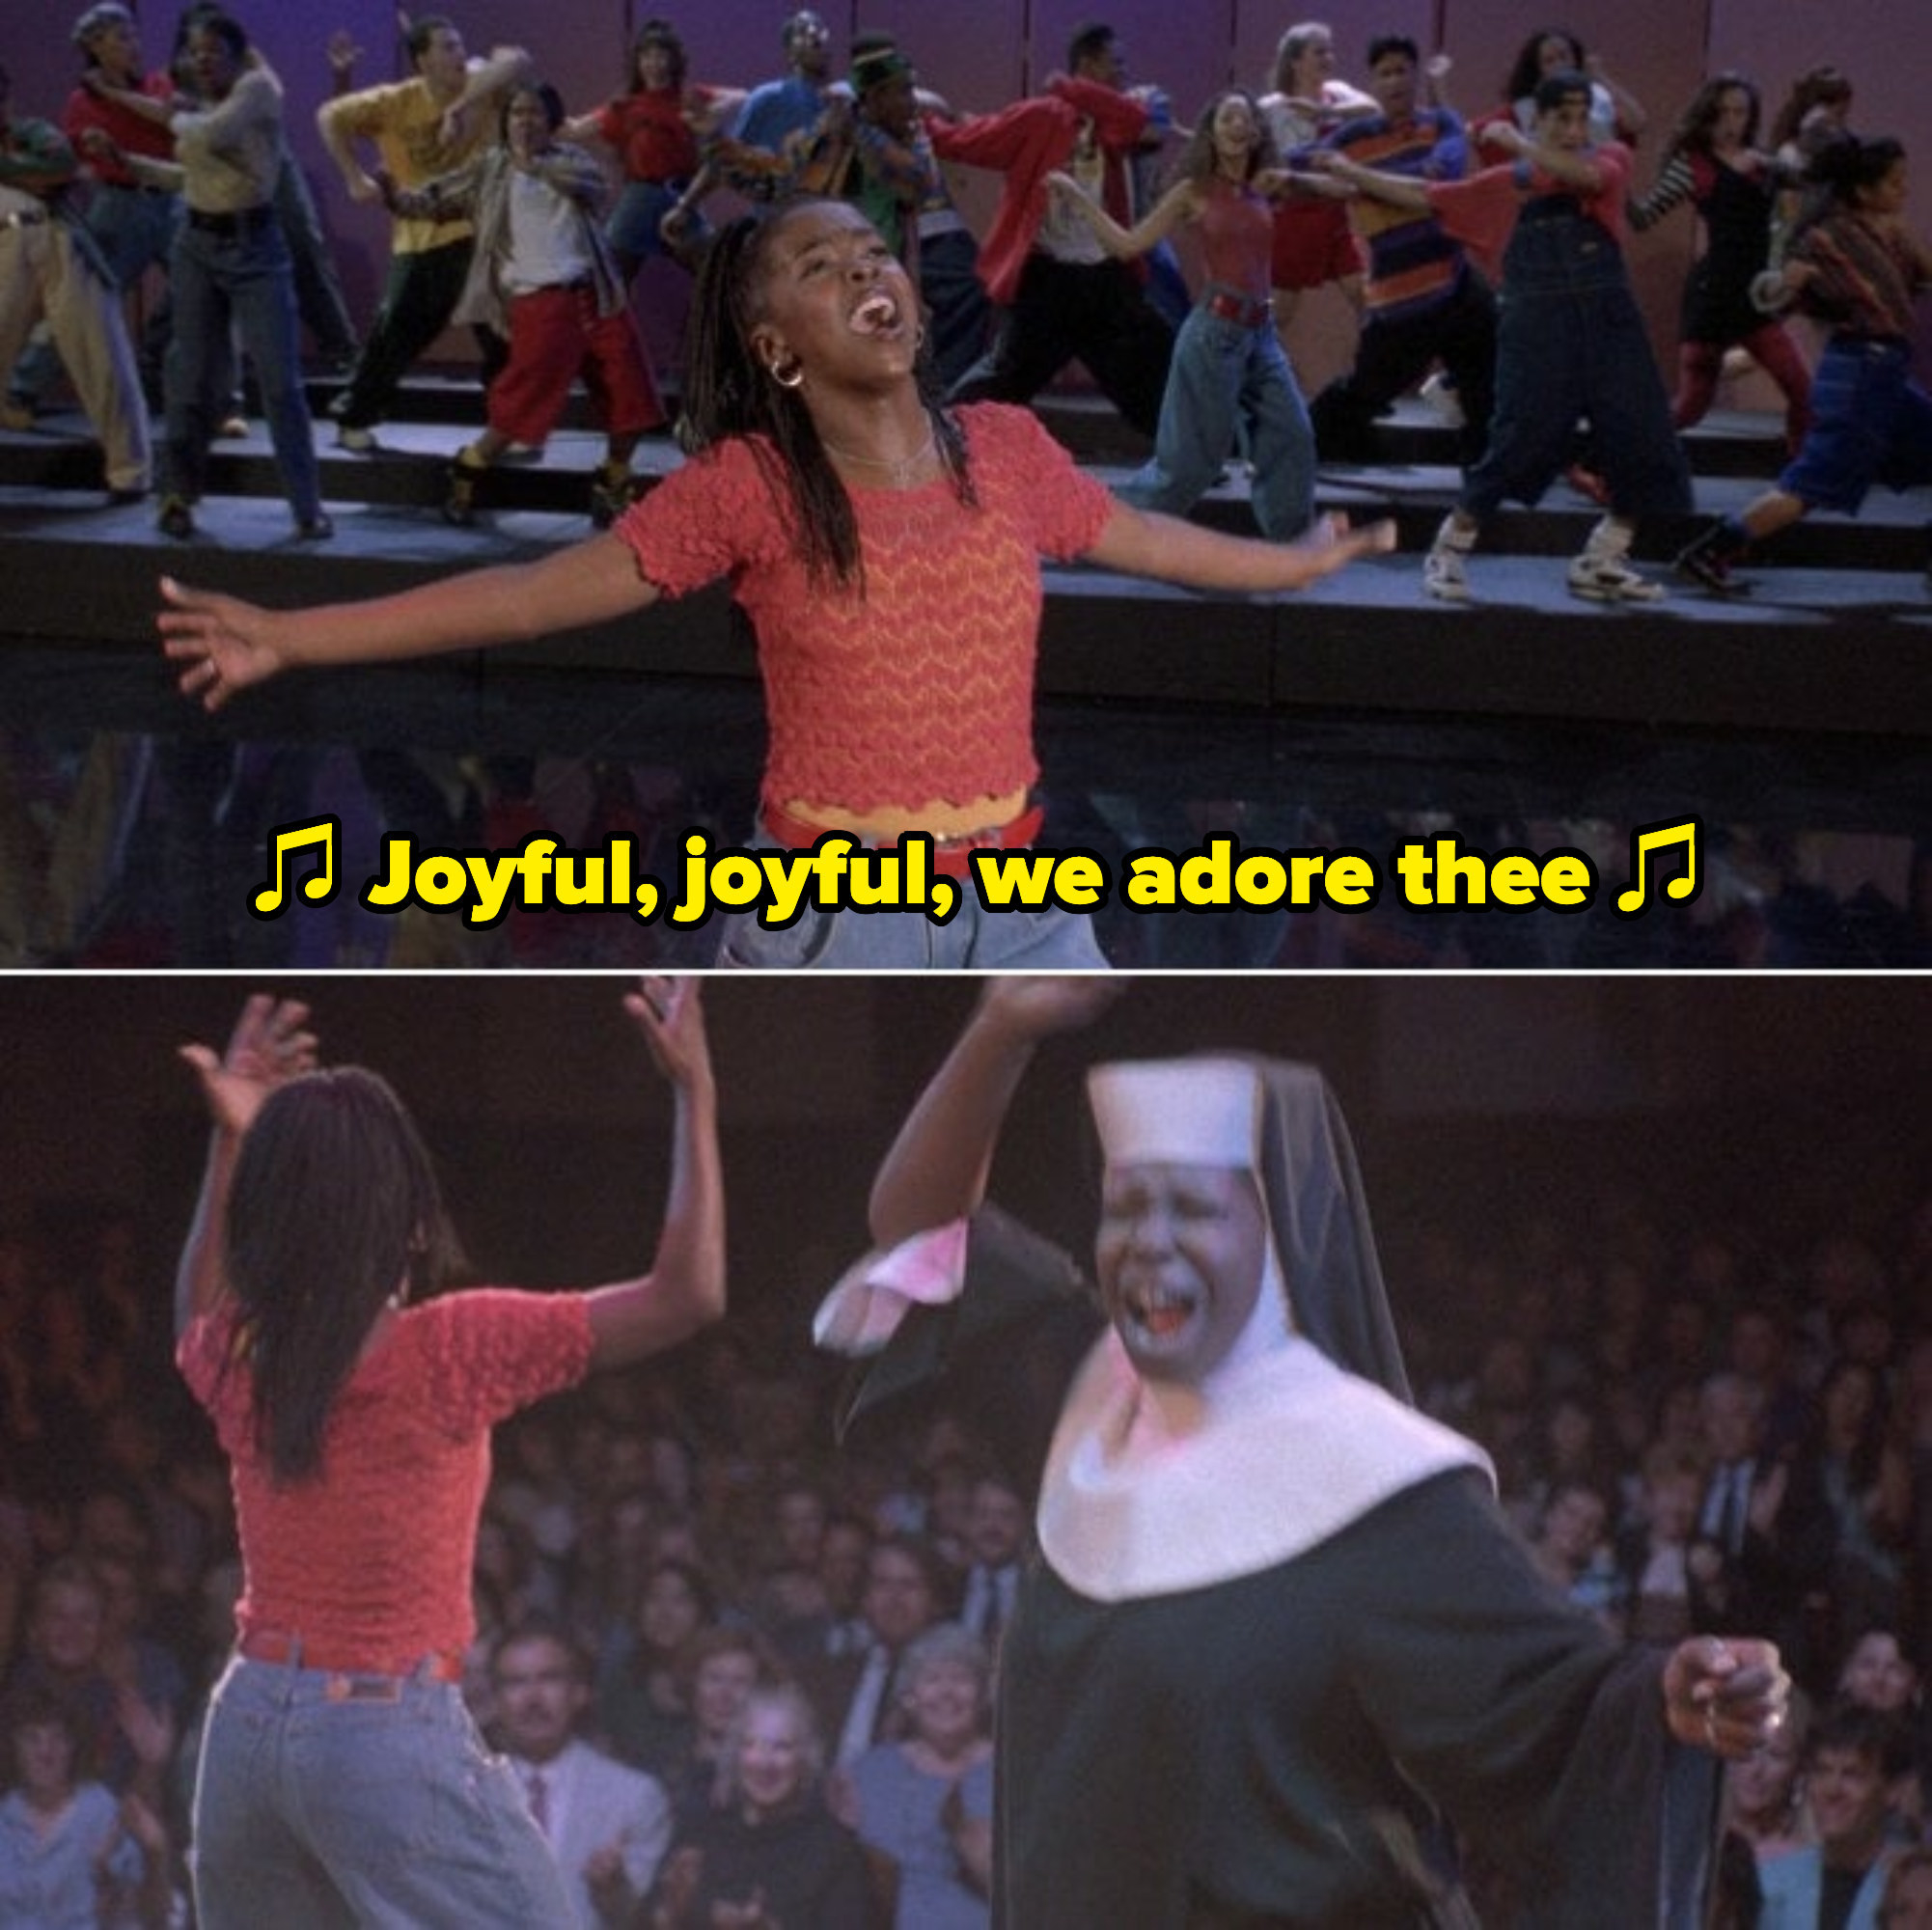 """Lauryn Hill and the rest of the students performing """"Joyful, Joyful"""" at the end of the movie"""